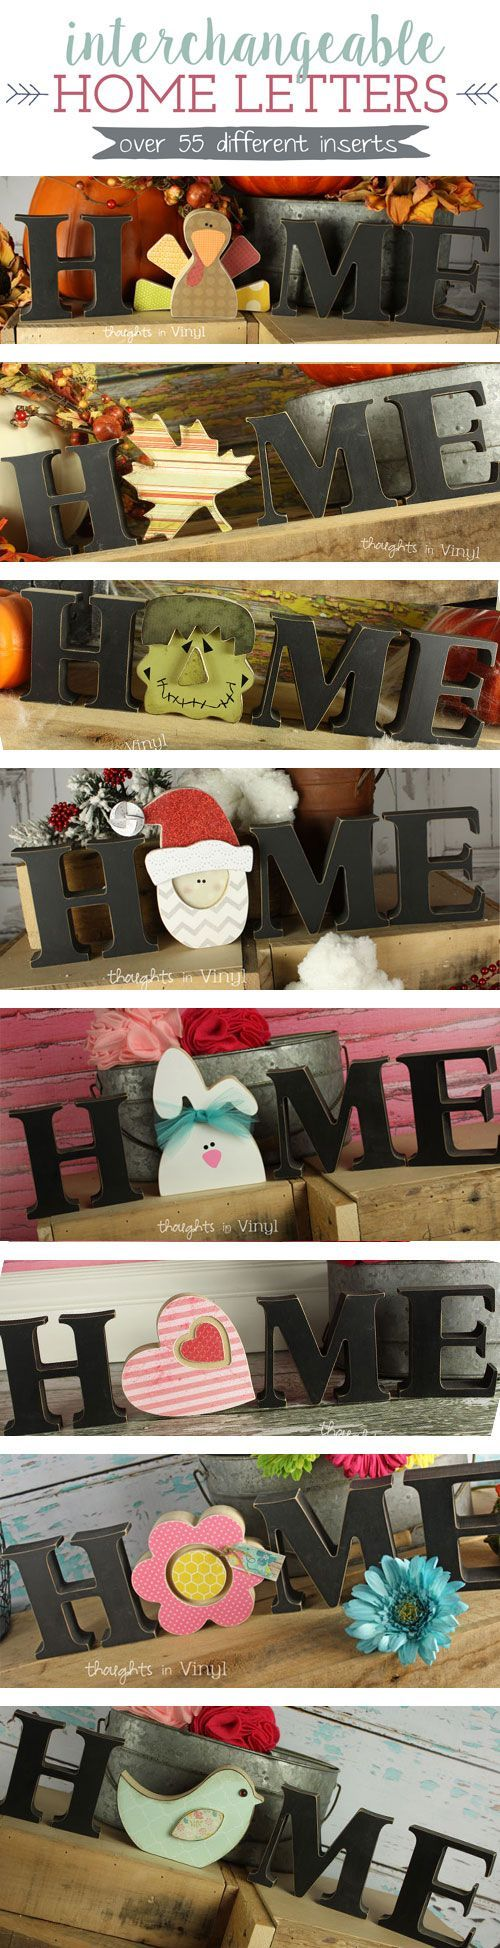 Interchangeable Home Letters |  Over 55 different inserts to pick from!  Great f...